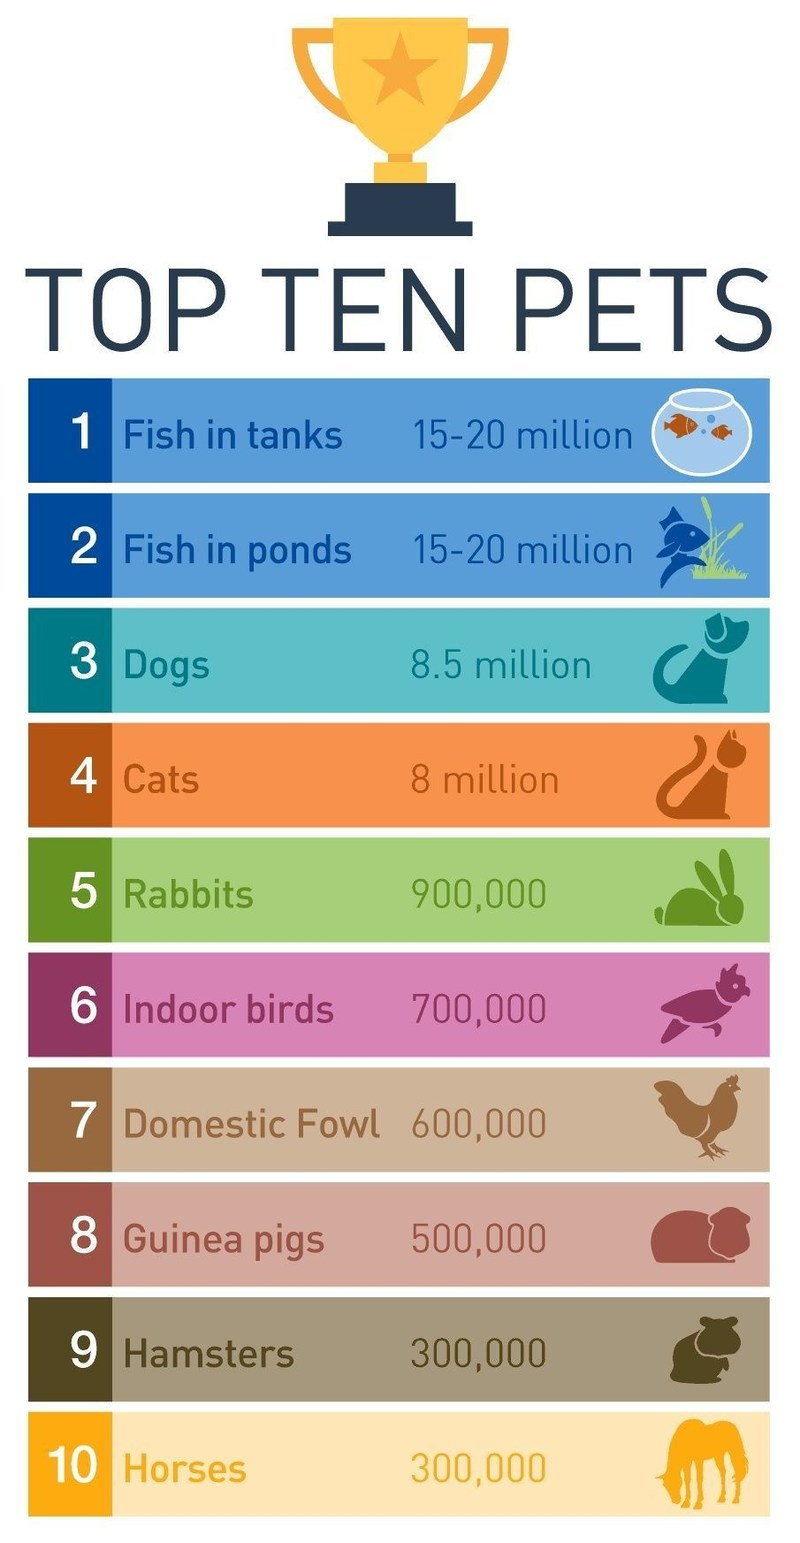 PFMA's Infographic of Top Ten Pets 2017 (PRNewsFoto/PFMA)